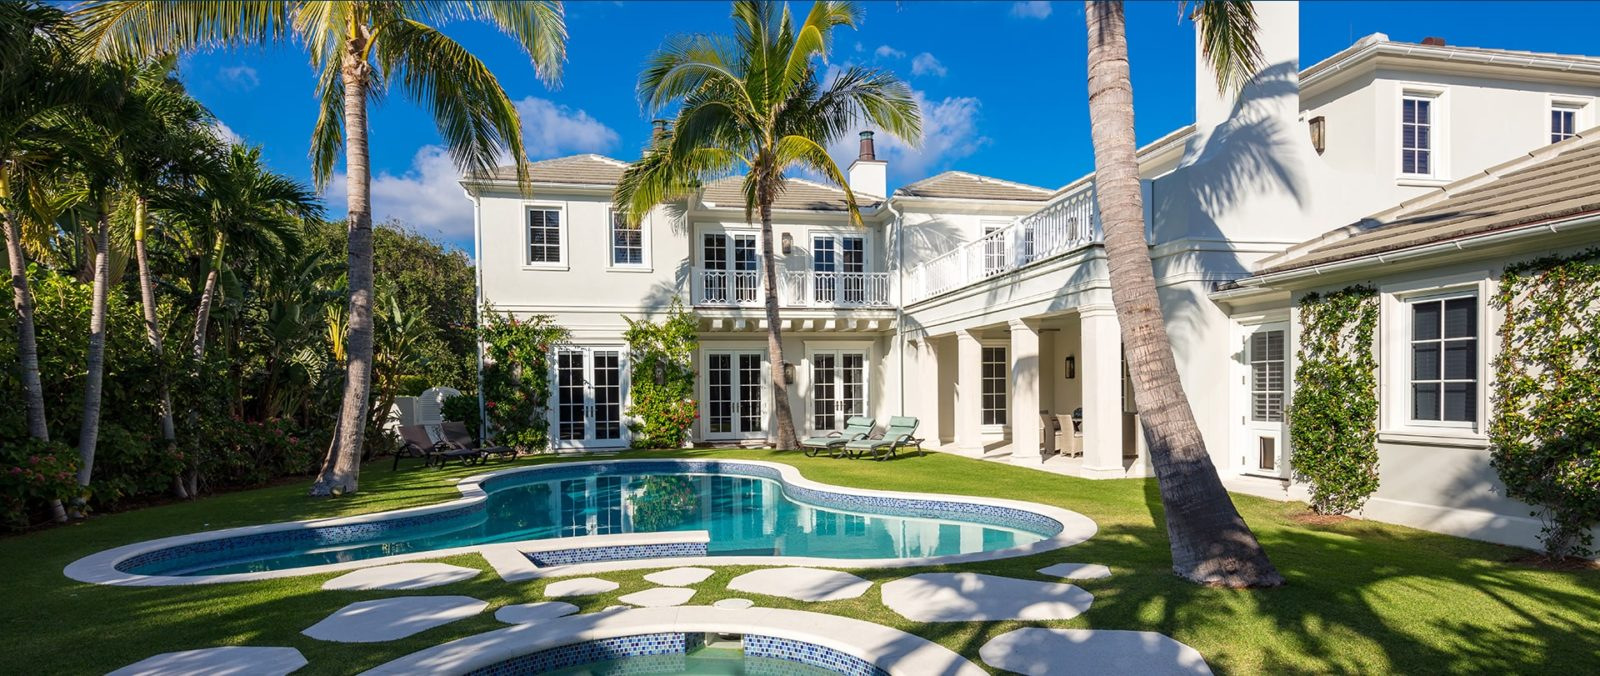 large two story home with pool by ecclestone home